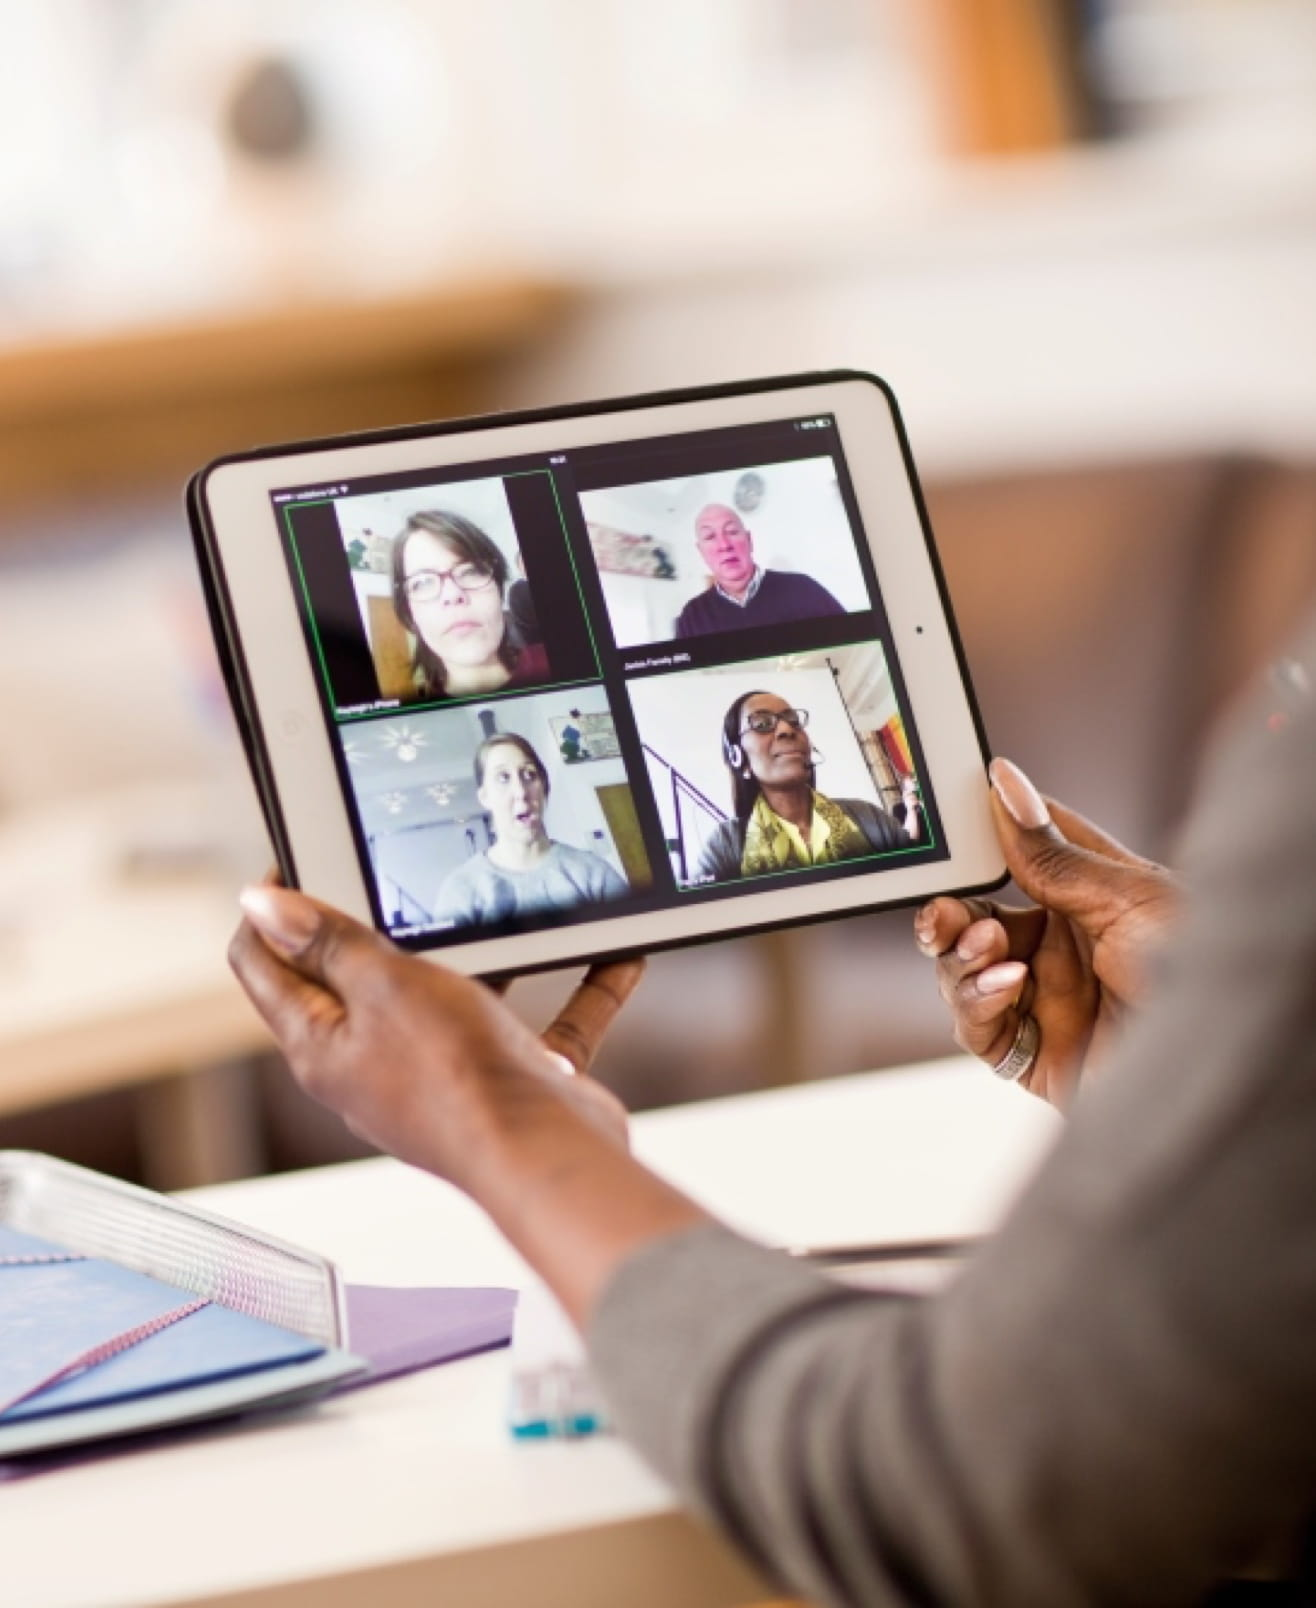 A woman uses OmniJoin web conferencing, video conferencing and online meeting software on an iPad